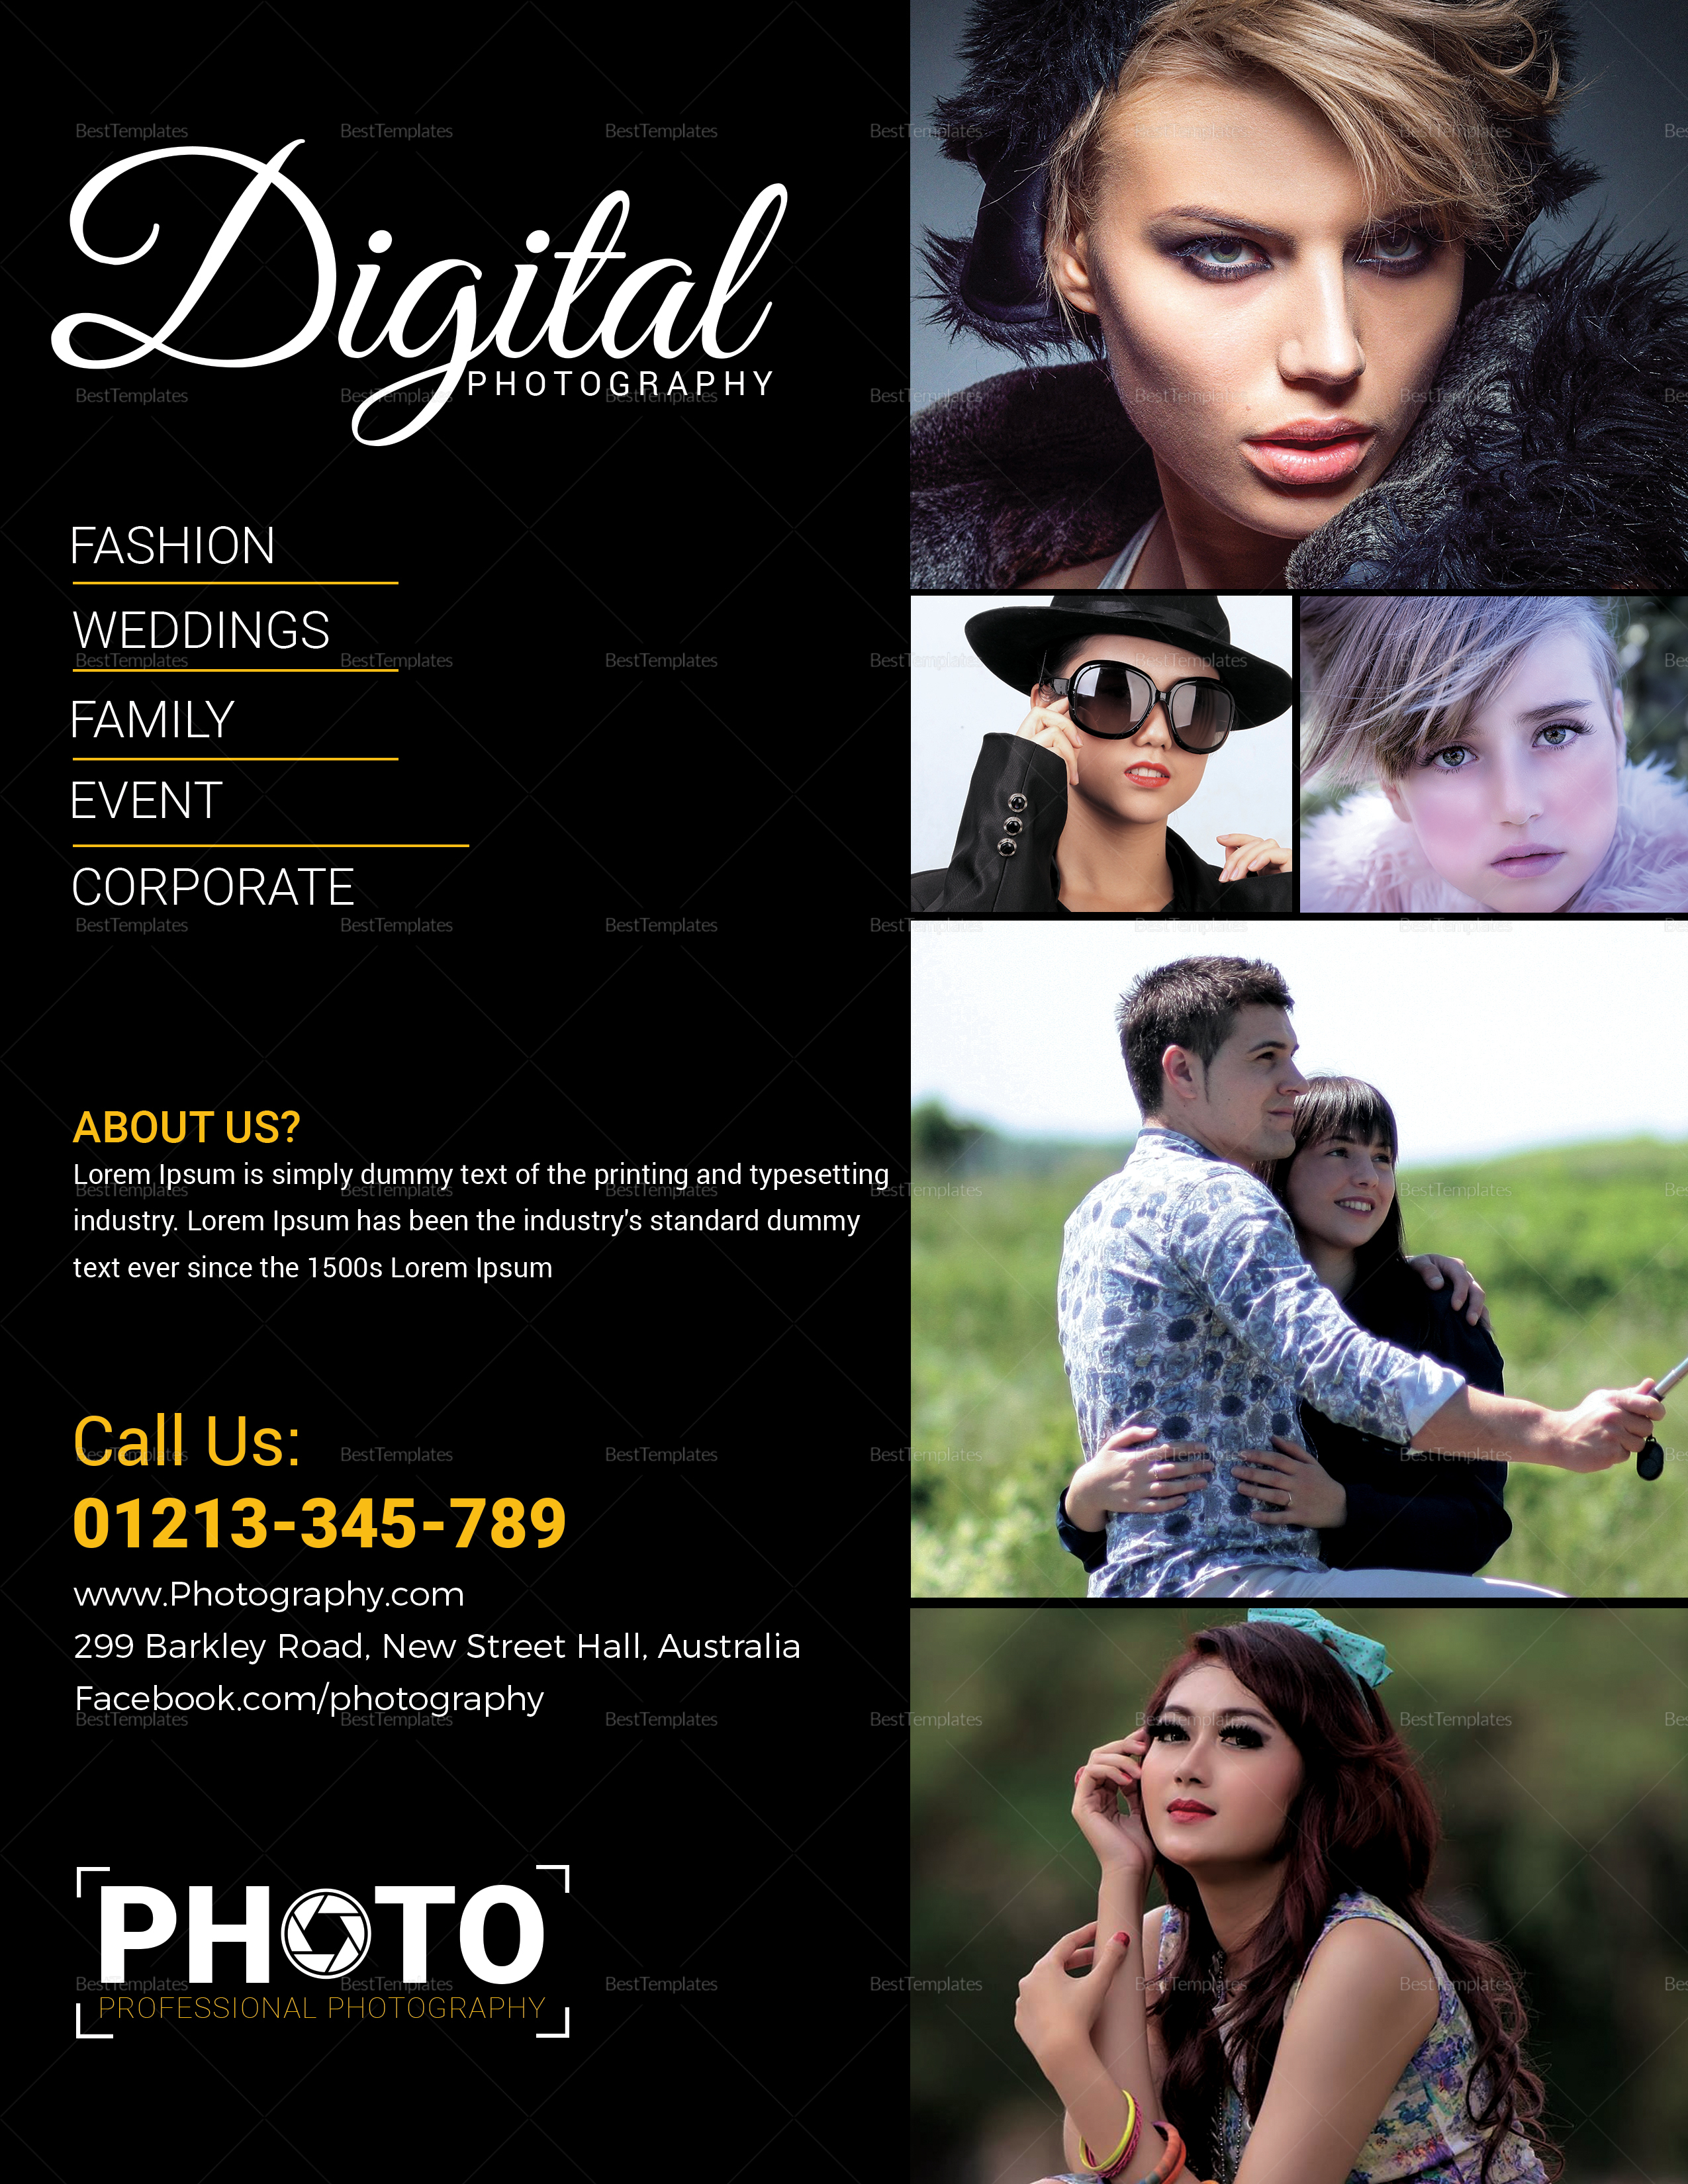 Digital Photography Flyer Design Template in Word, PSD, Publisher